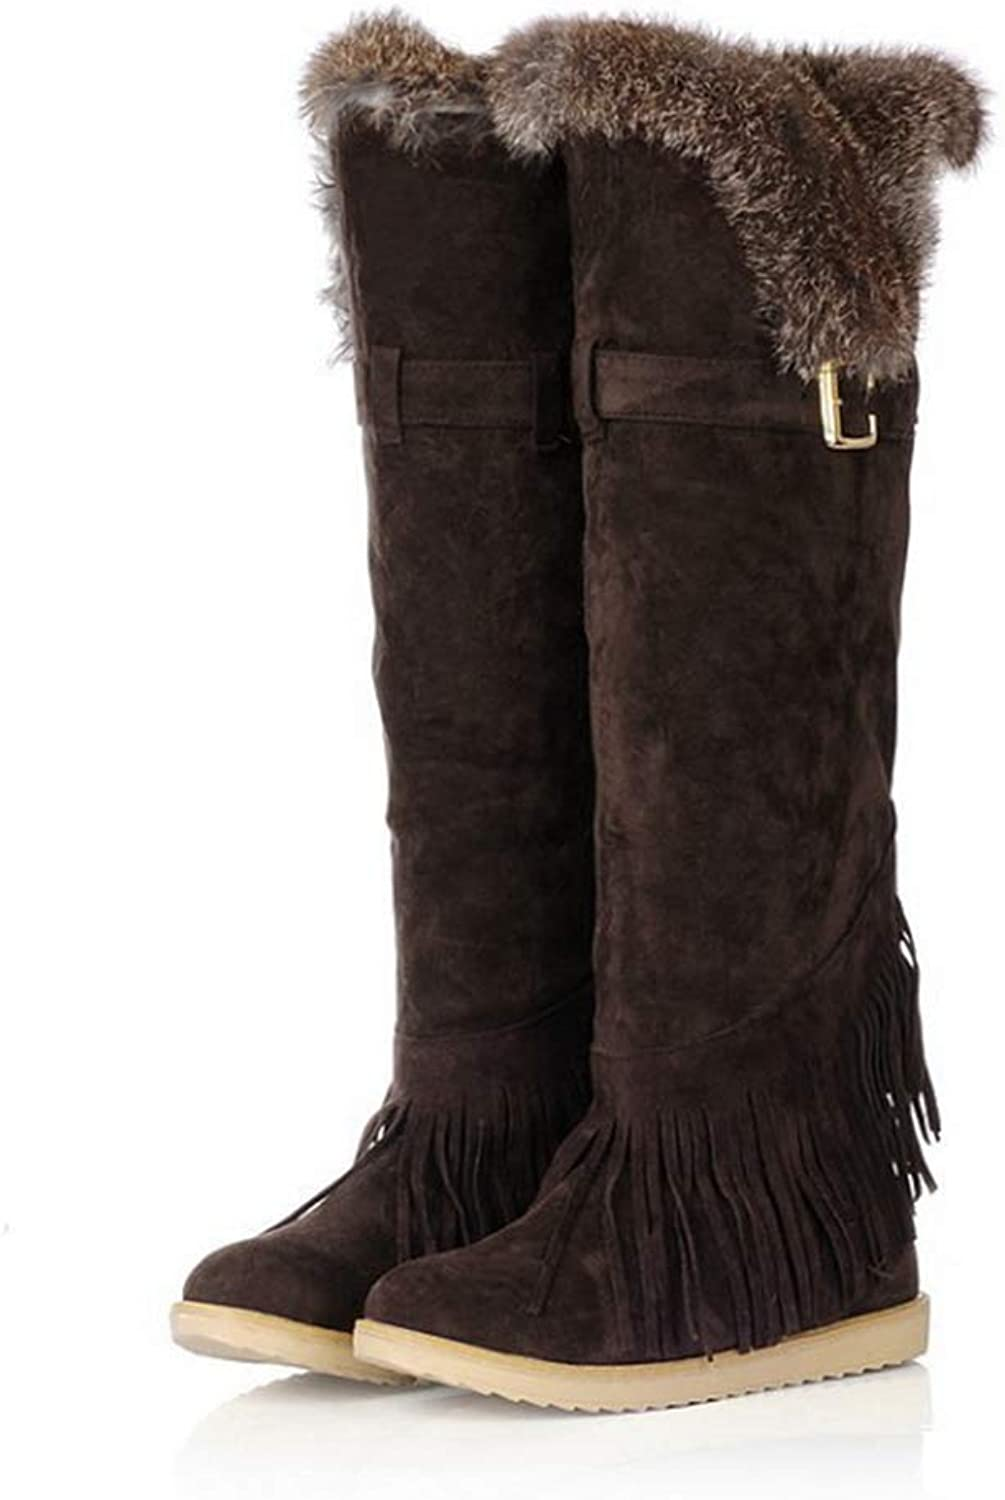 Wallhewb Fashion Winter Women Over The Knee Snow Boots Scrub Warm Fur Wedges Thigh High Thermal Fringed shoes Joker Wear Resistant Fashionable Elegant Soft Velvet Yellow 8 M US shoes